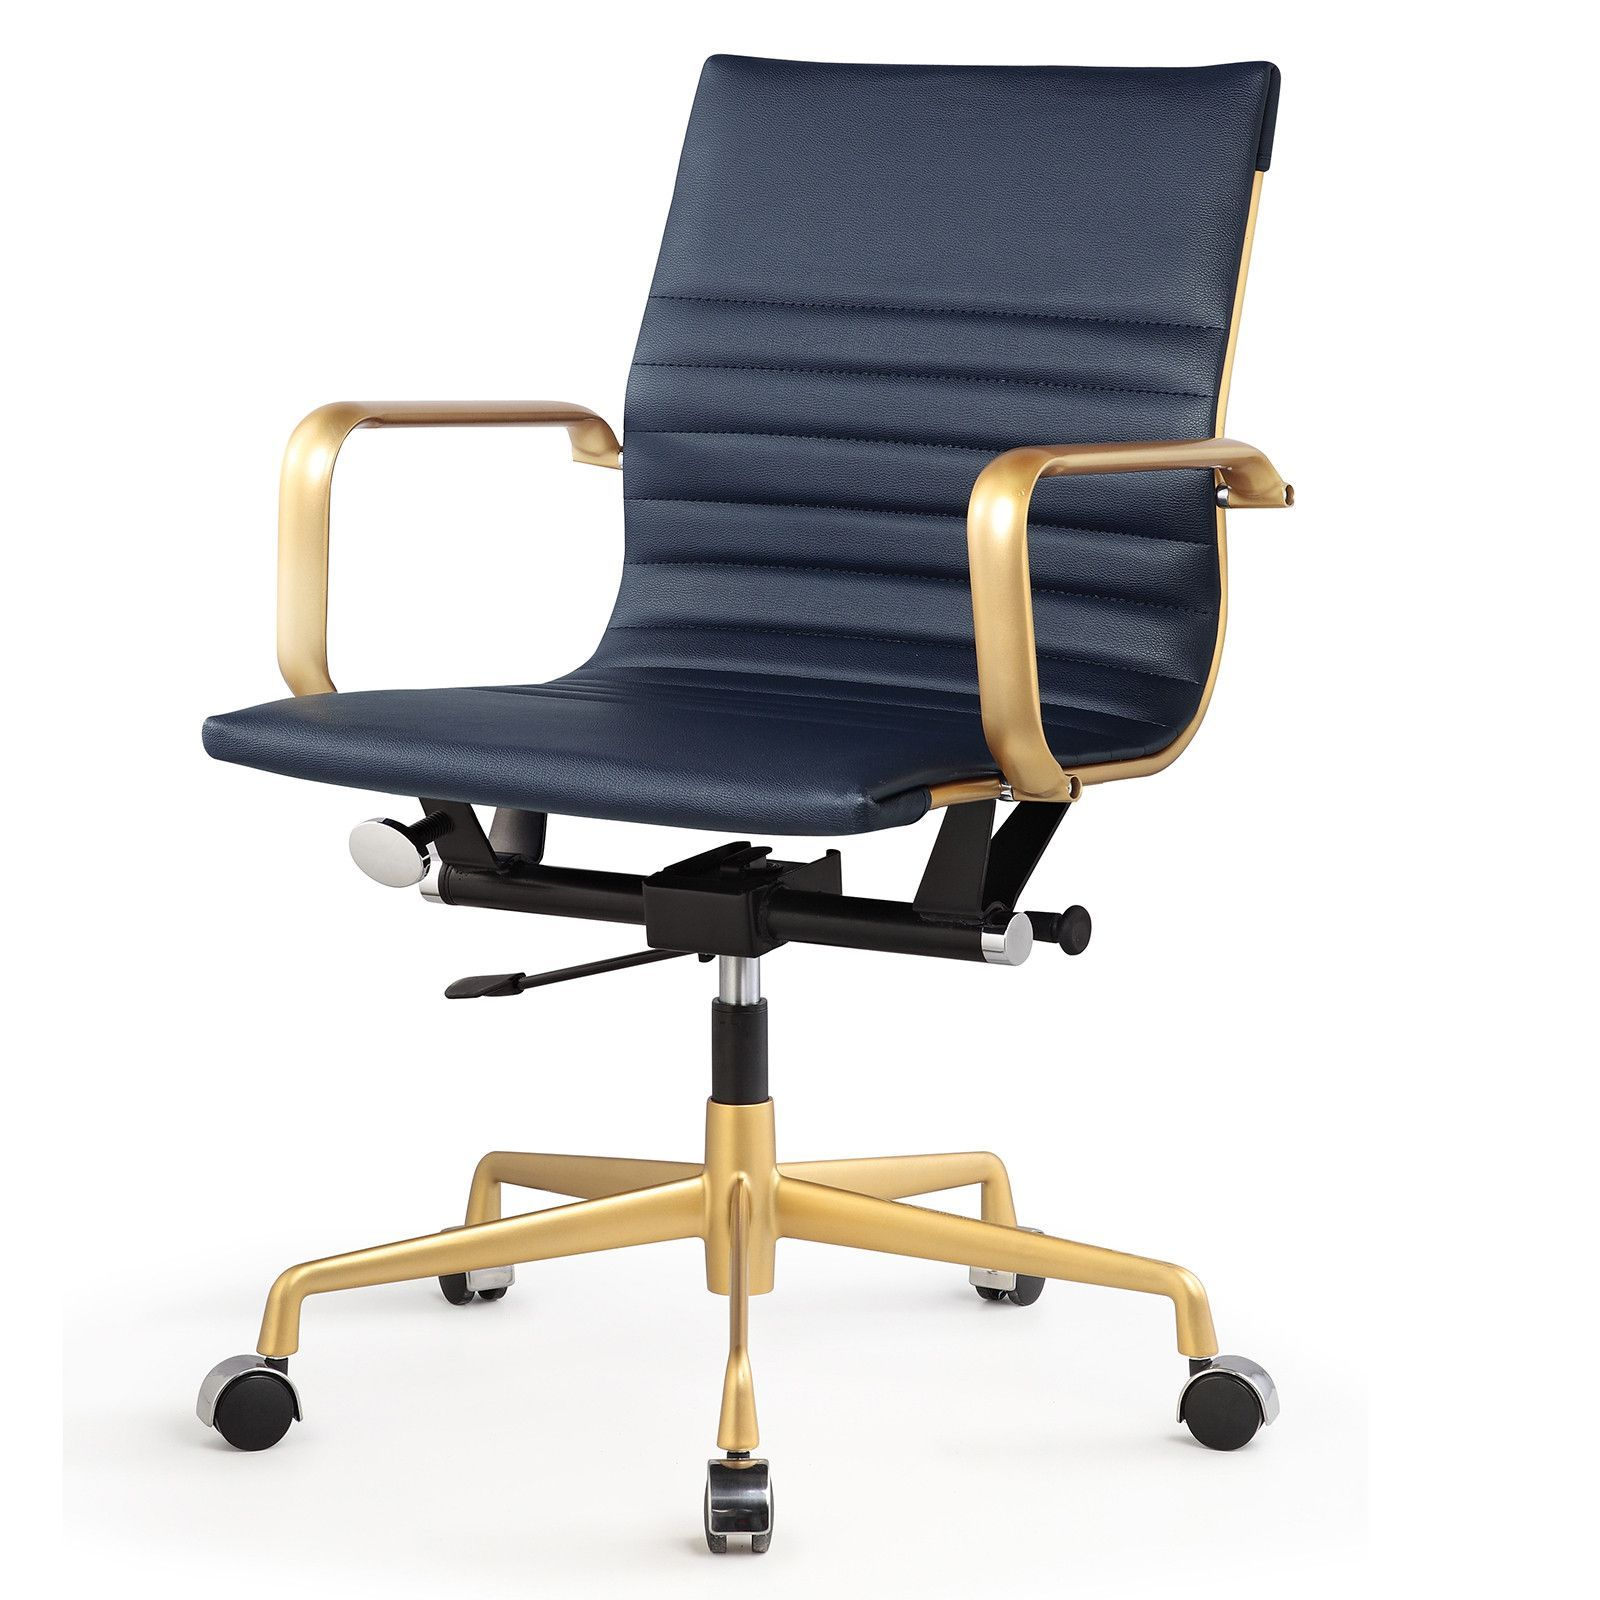 M348 Office Chair In Vegan Leather Color Options